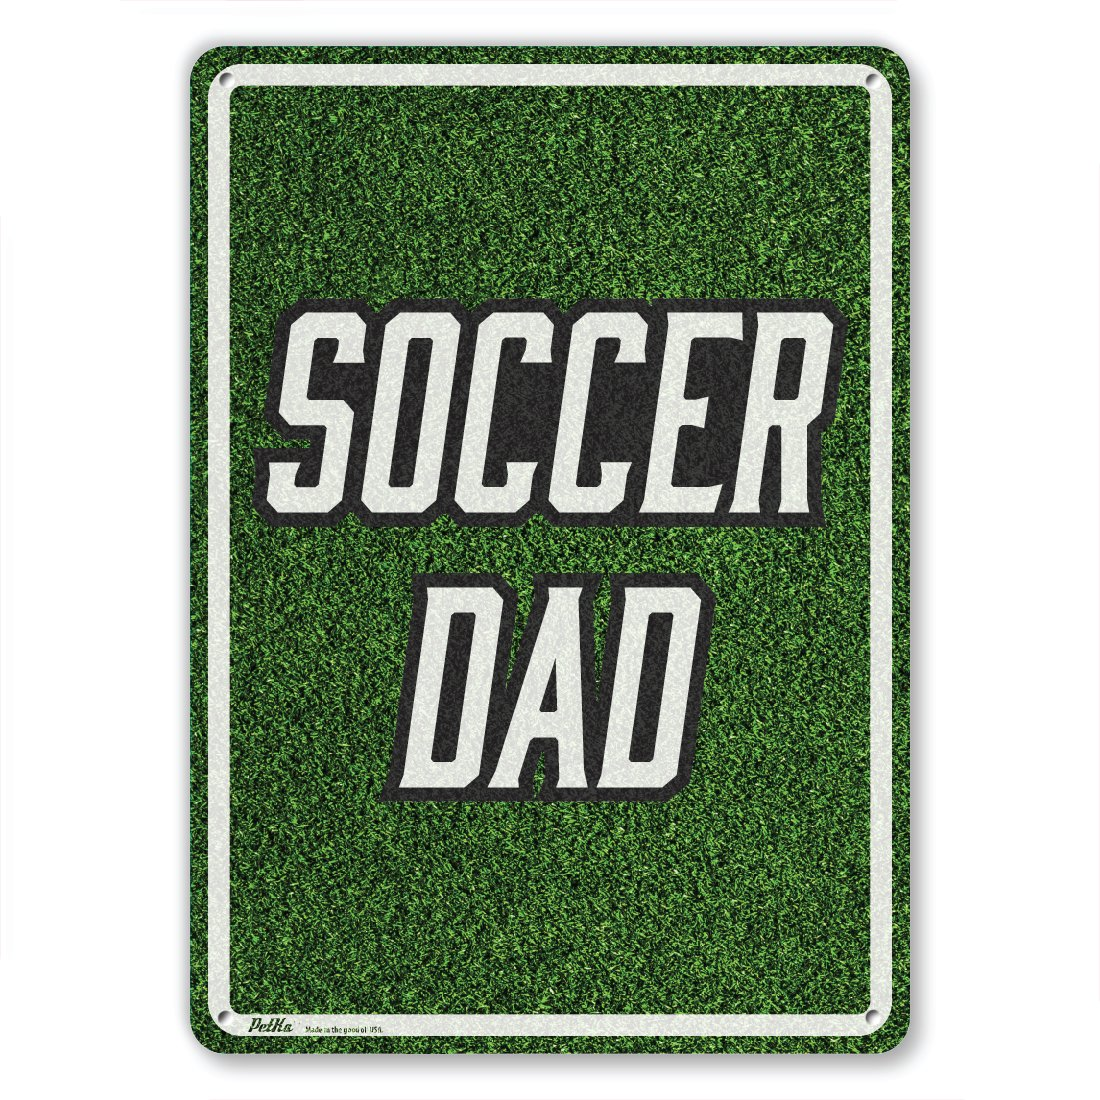 PetKa Signs and Graphics PKSC-0098-NA/_10x14Soccer dad Aluminum Sign White//Black Text on Soccer Field Background 10 x 14